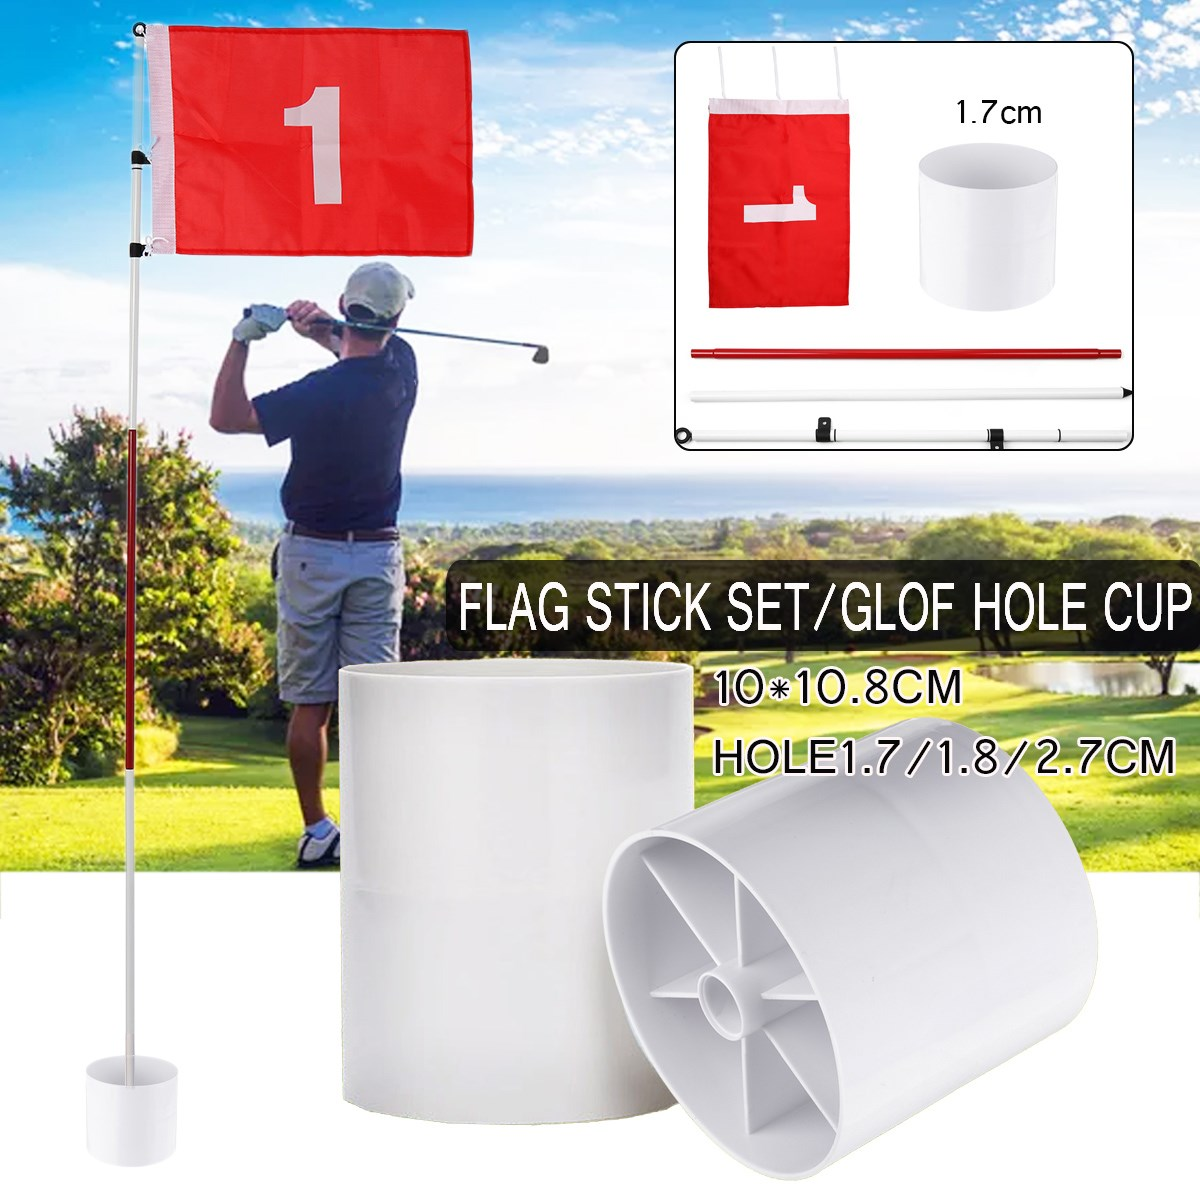 Flag Stick Set /1PC Glof Hole Cup White Plastic Professional Backyard Practice Golf Flag Stick Putting Green Hole Pole Cup